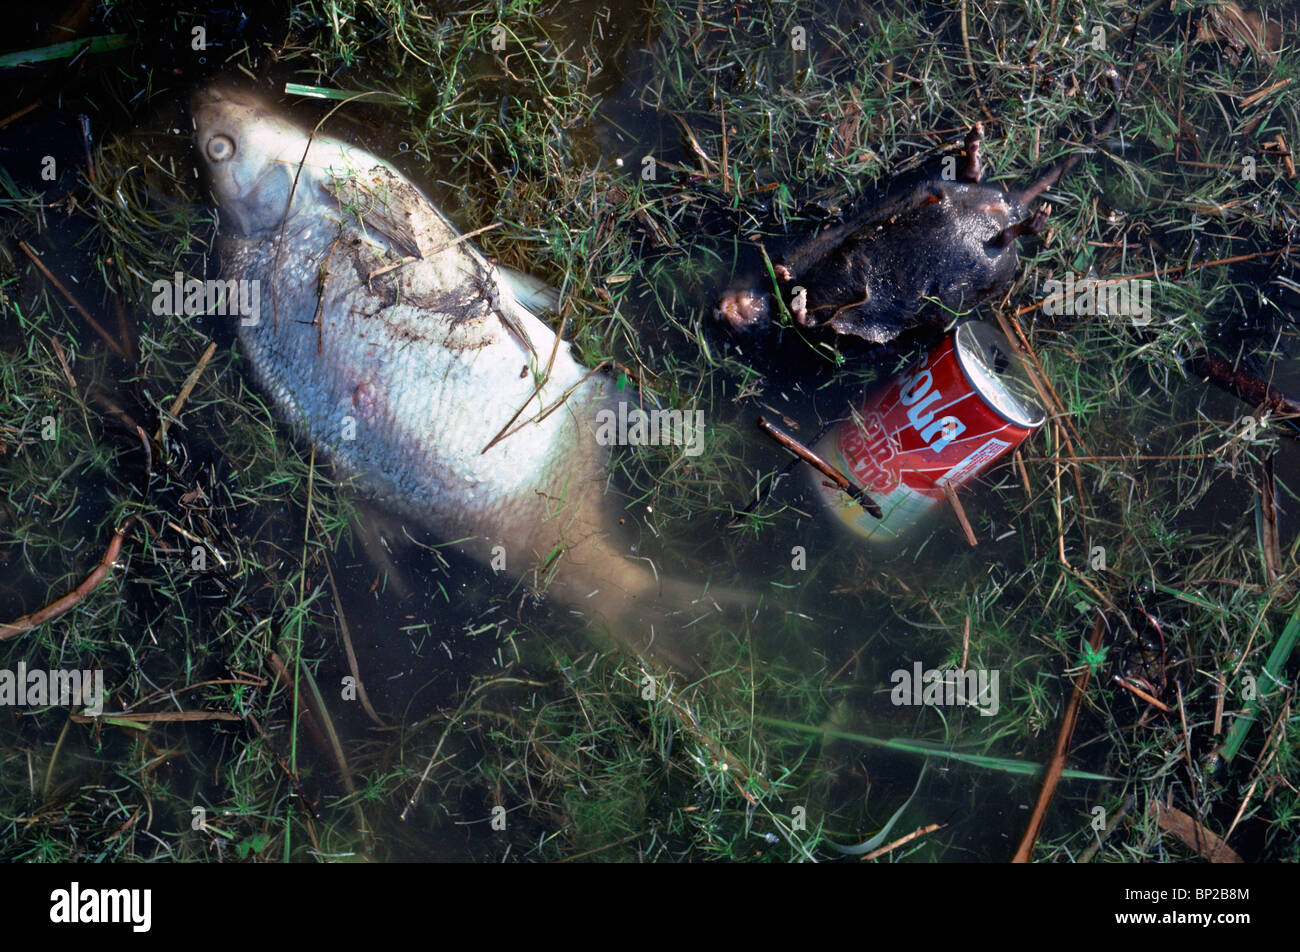 a dead fish floats in polluted water - Stock Image